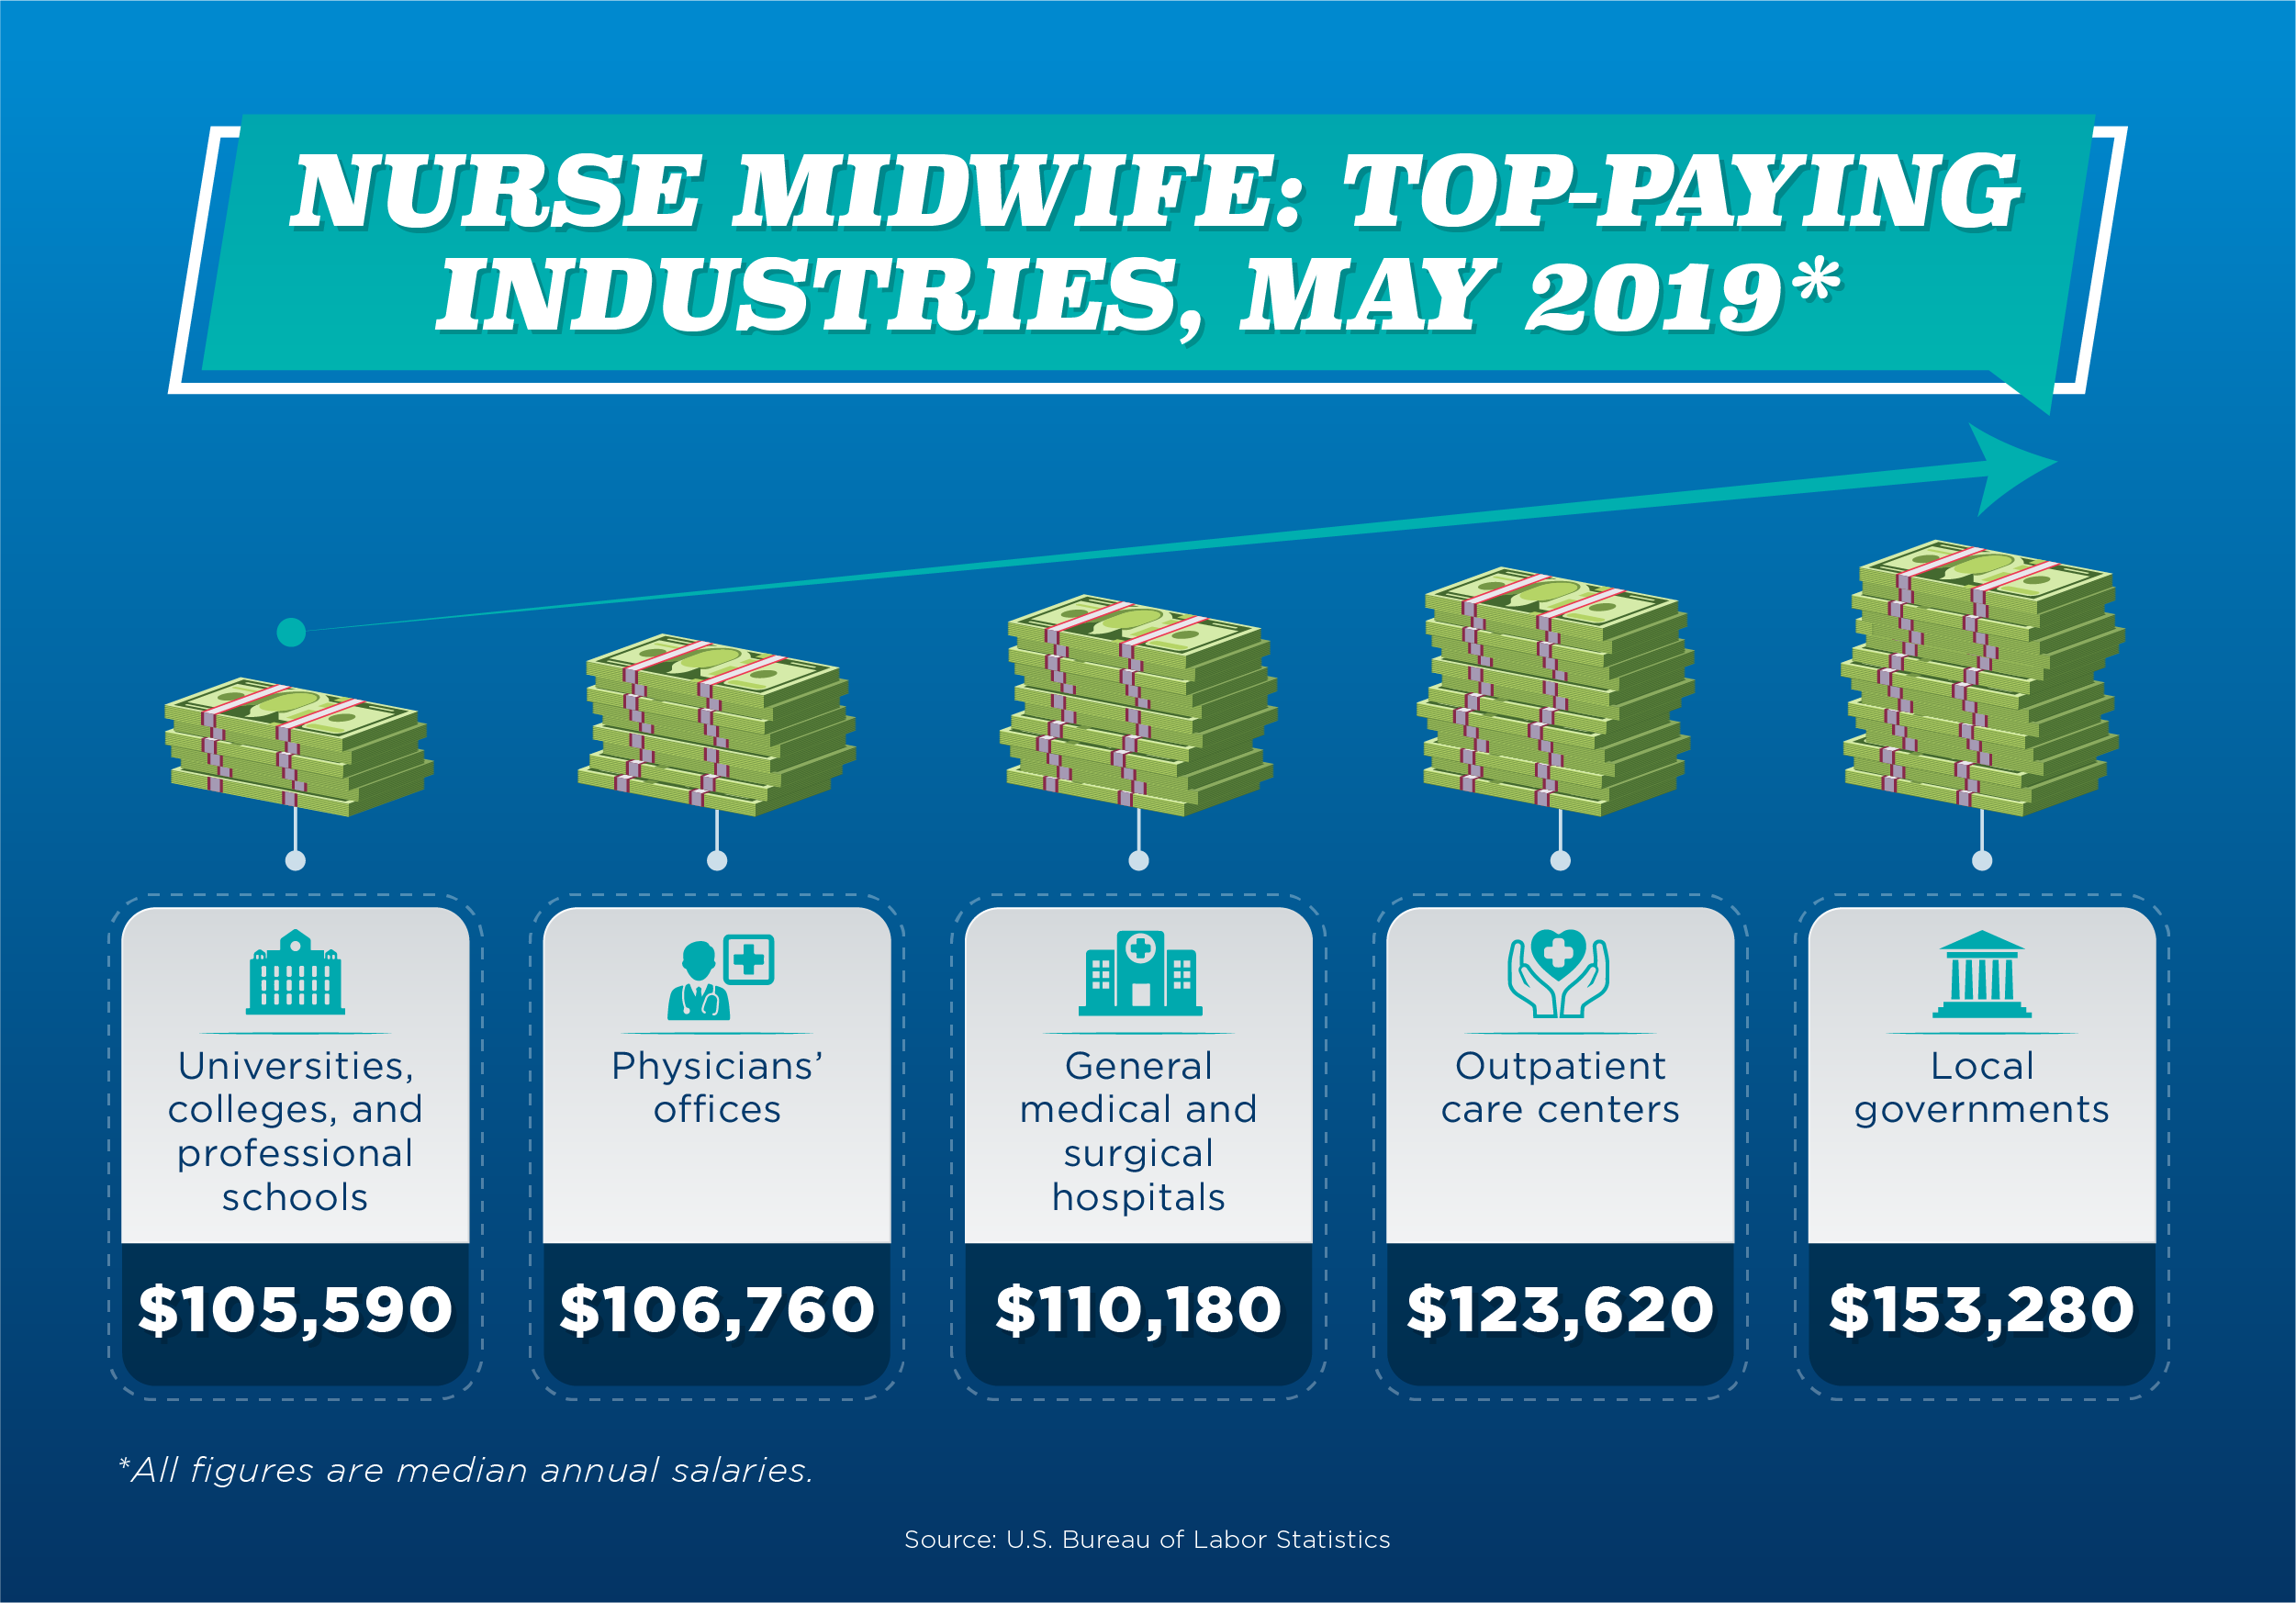 A list of the five top-paying industries that employ nurse midwives as of May 2019.